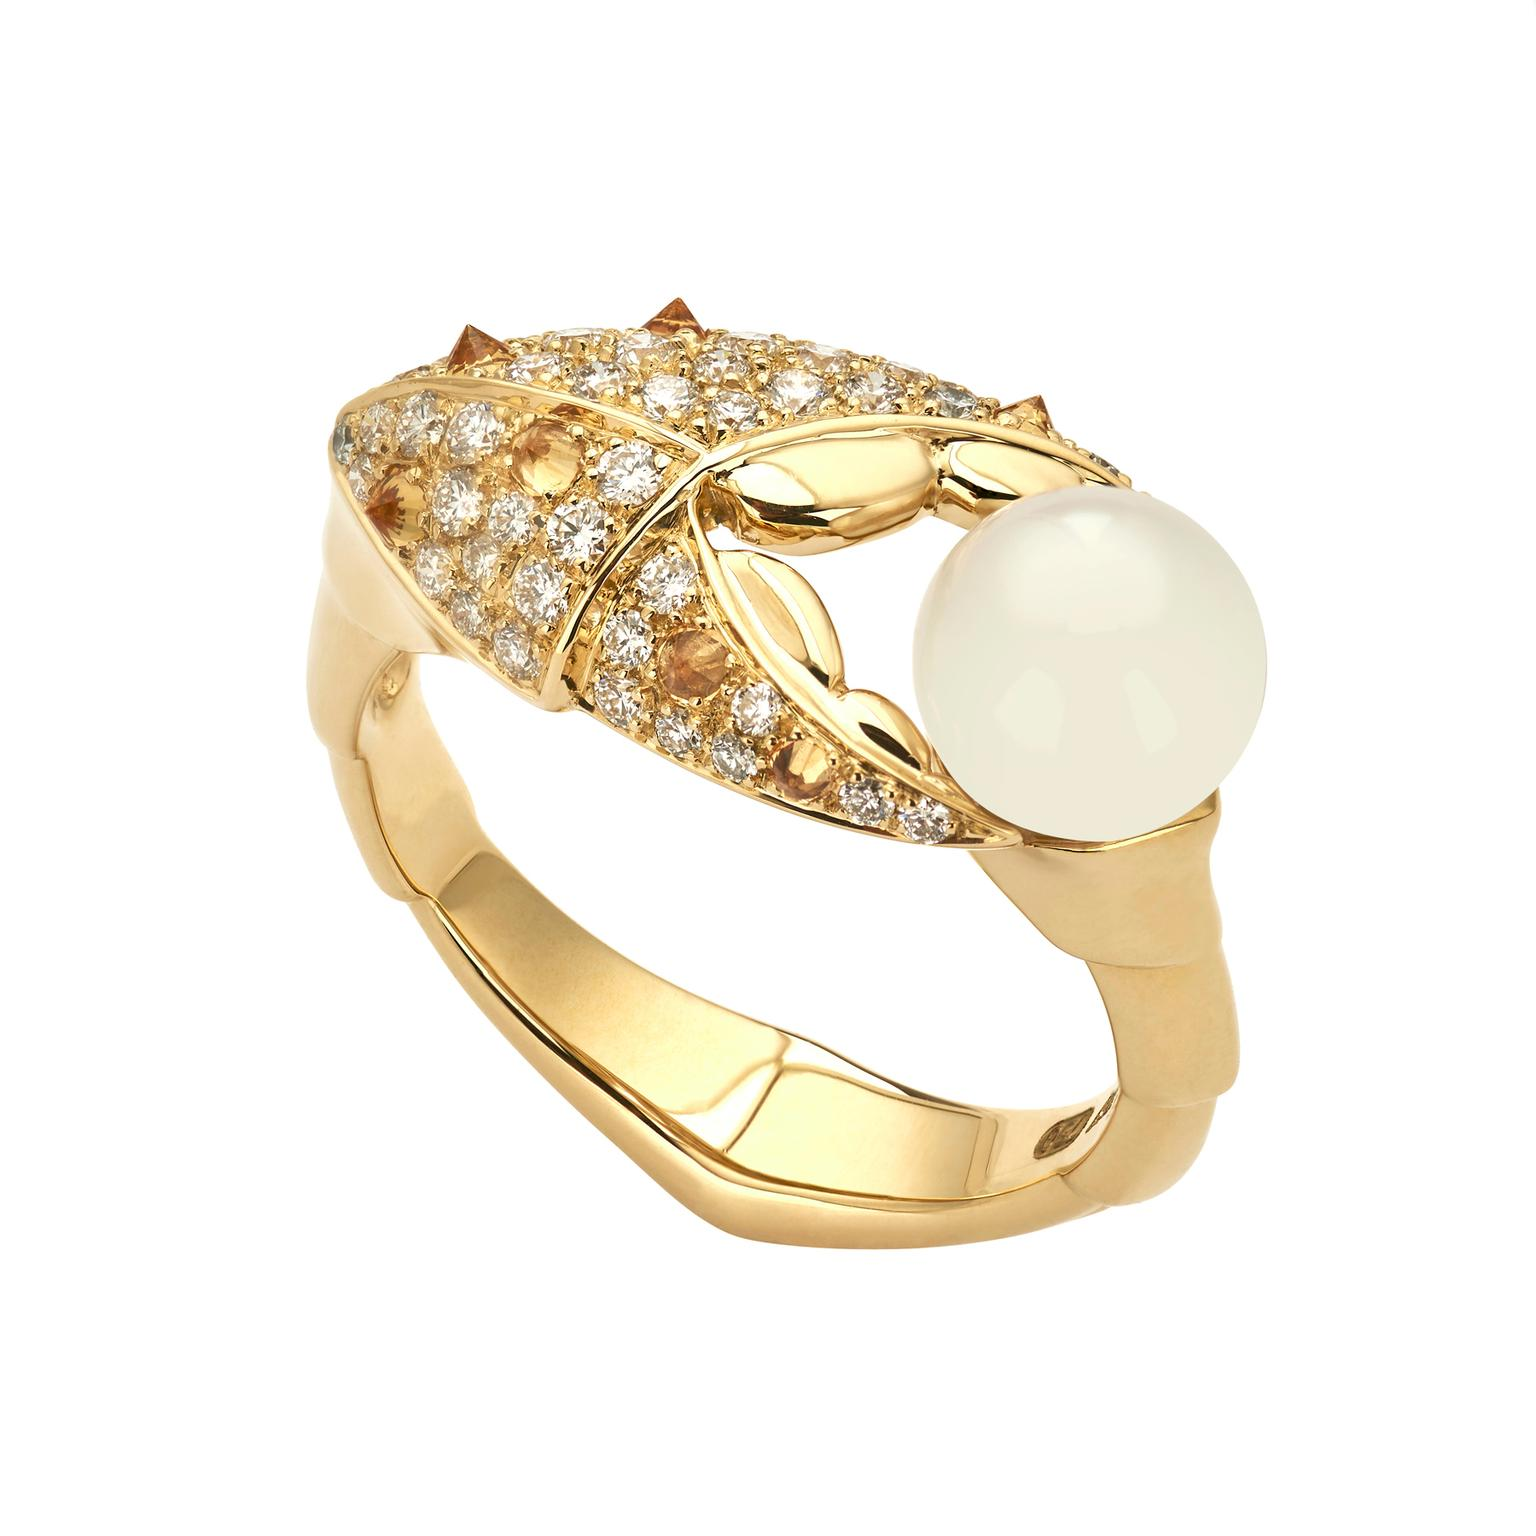 Stephen Webster Crab Pincer pearl ring